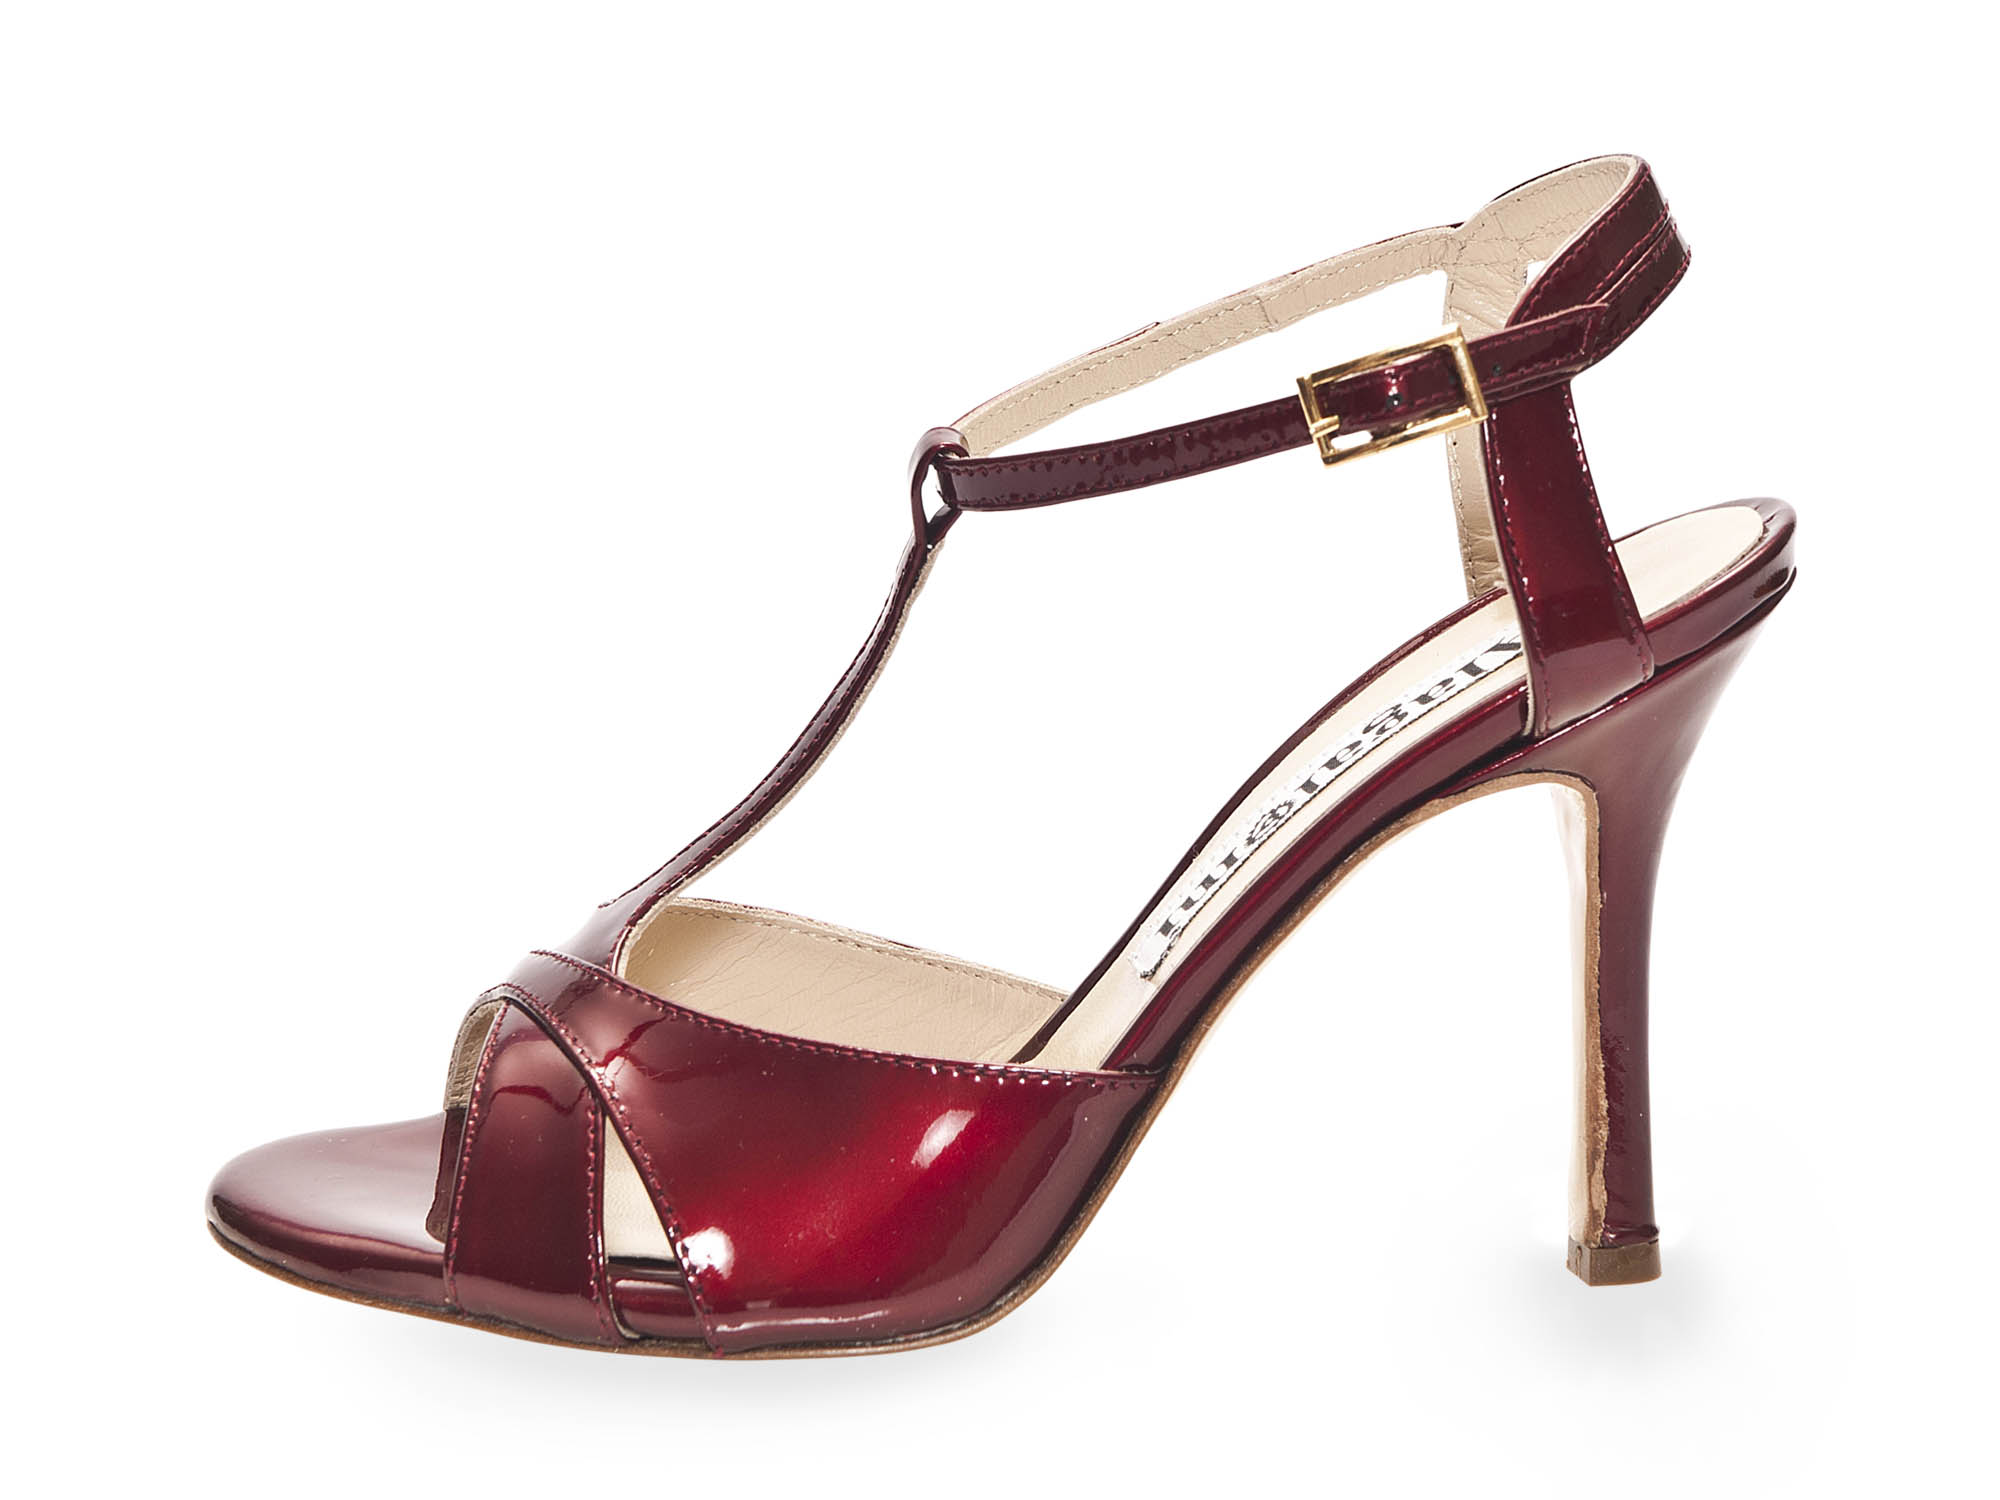 Maleva Pearl Patent Bordeaux Leather